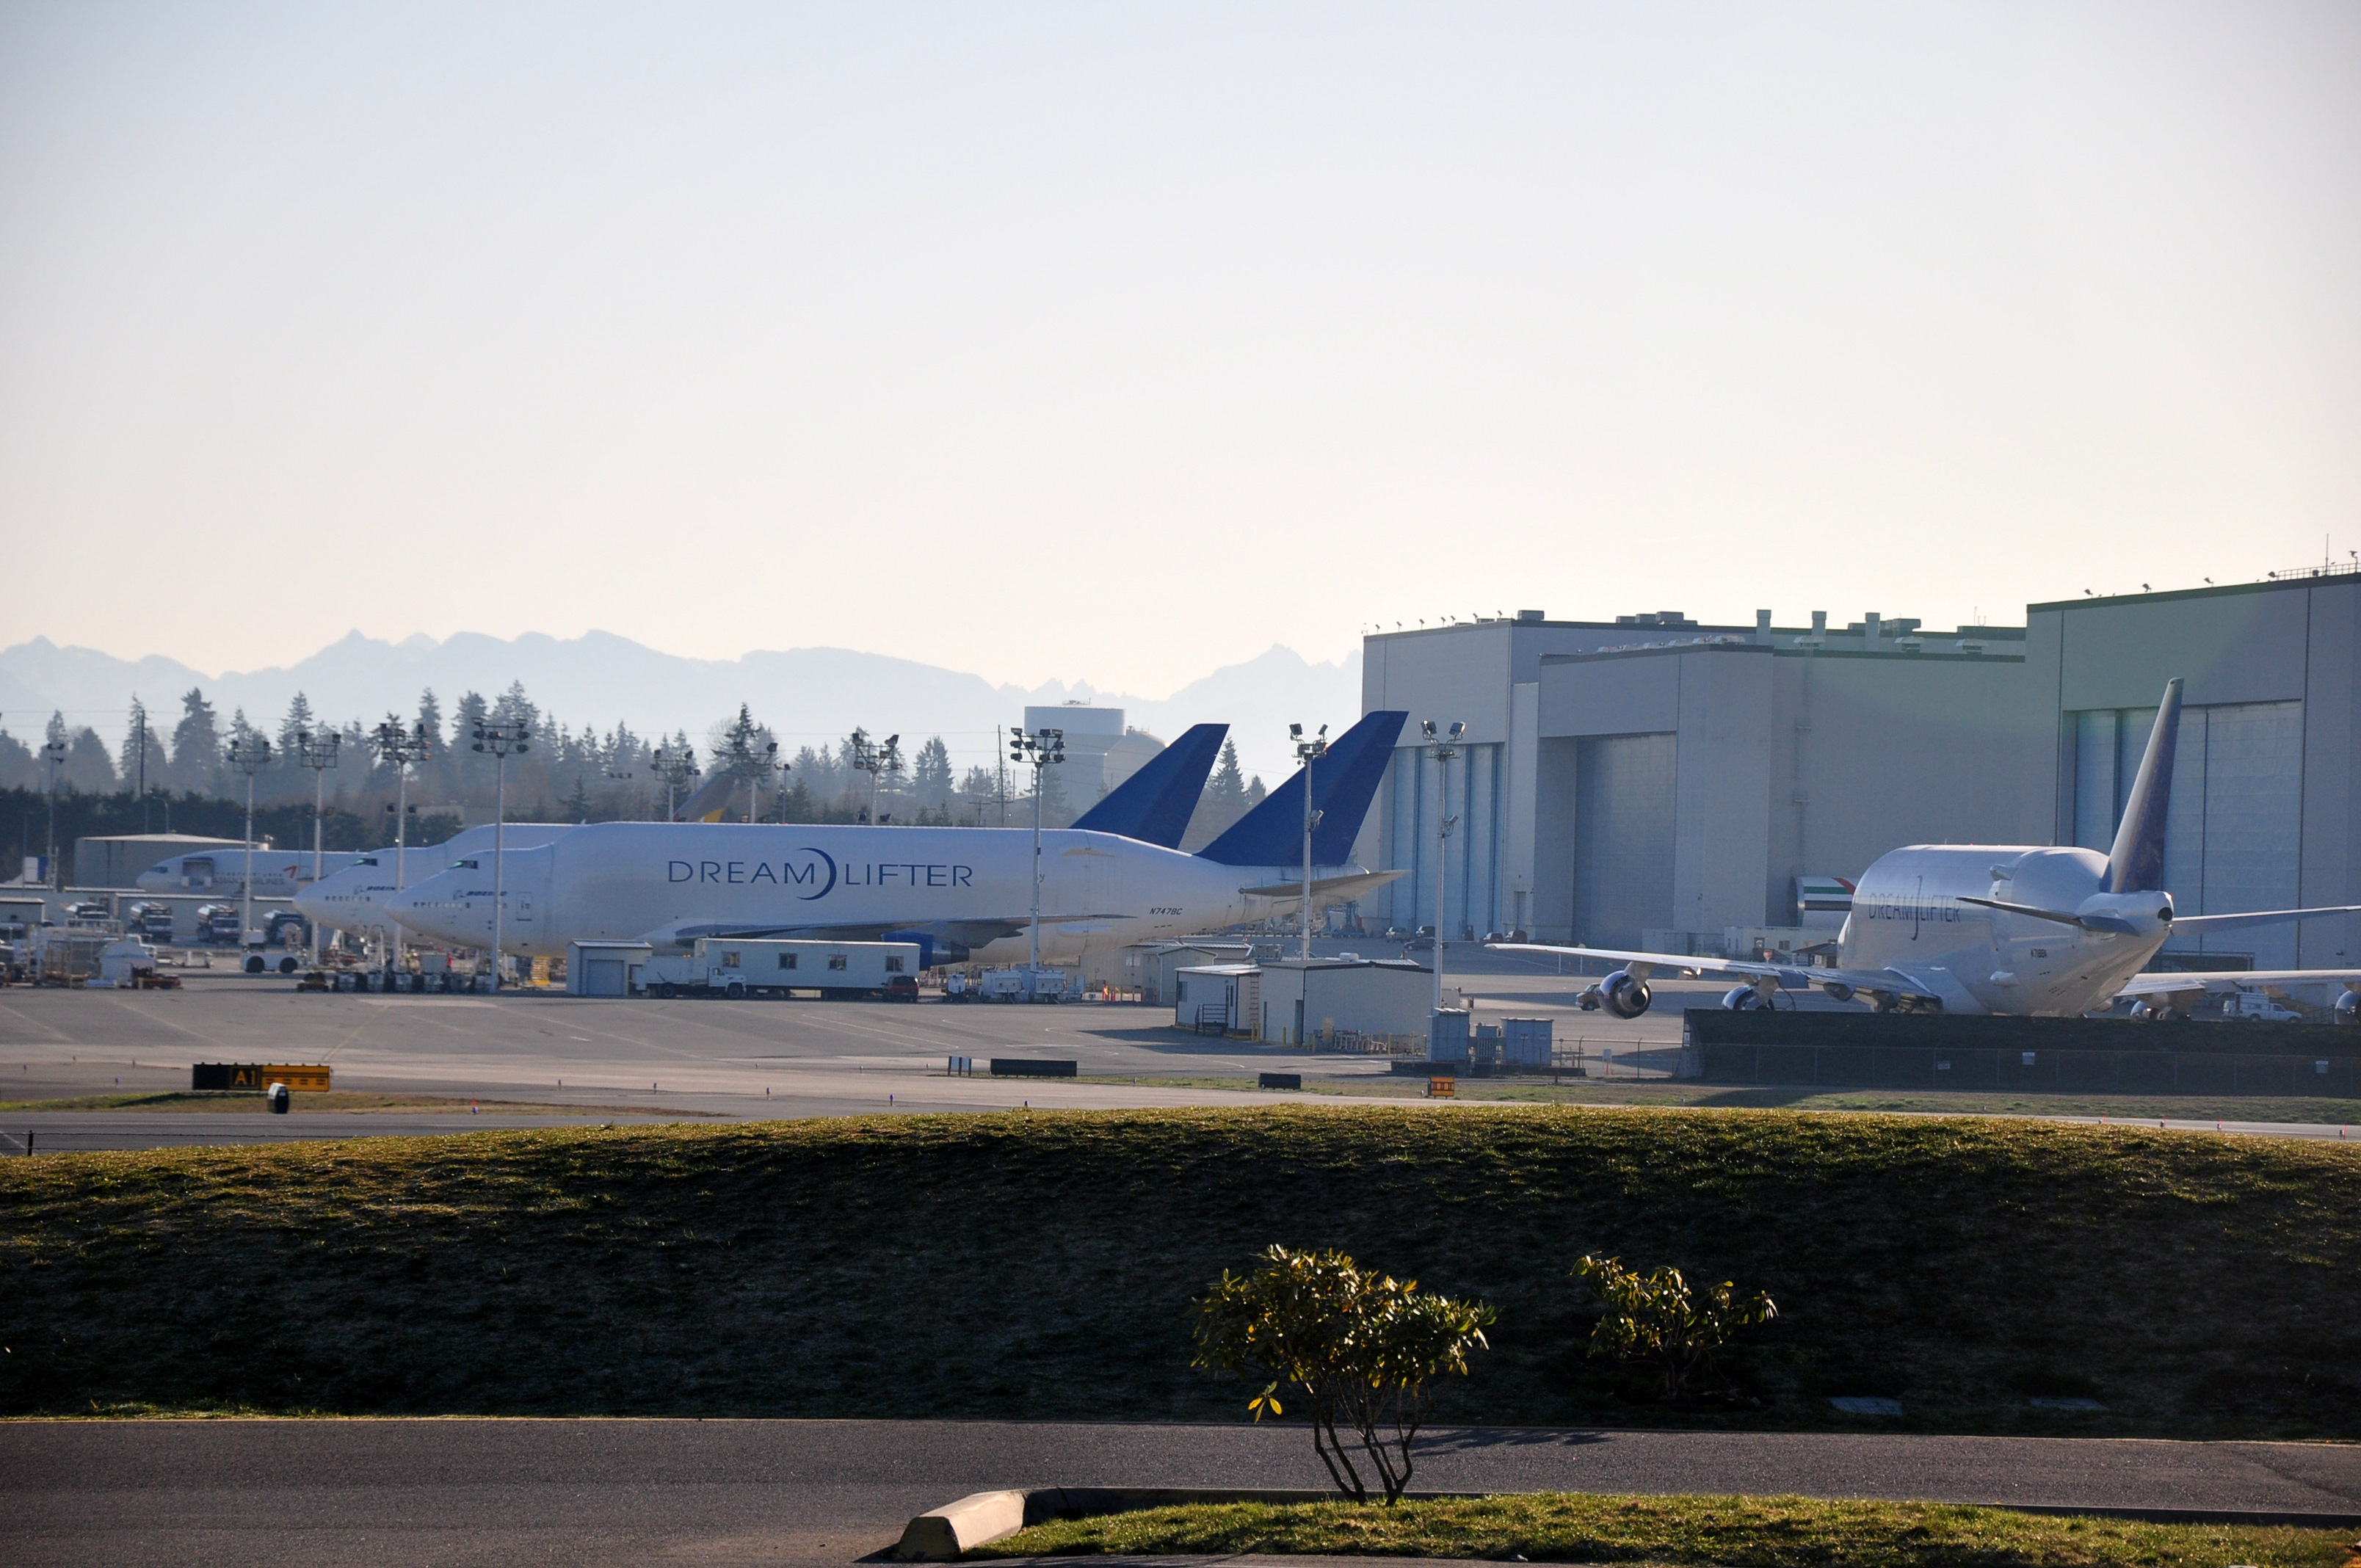 File:Three dreamlifters at Boeing Everett factory JPG